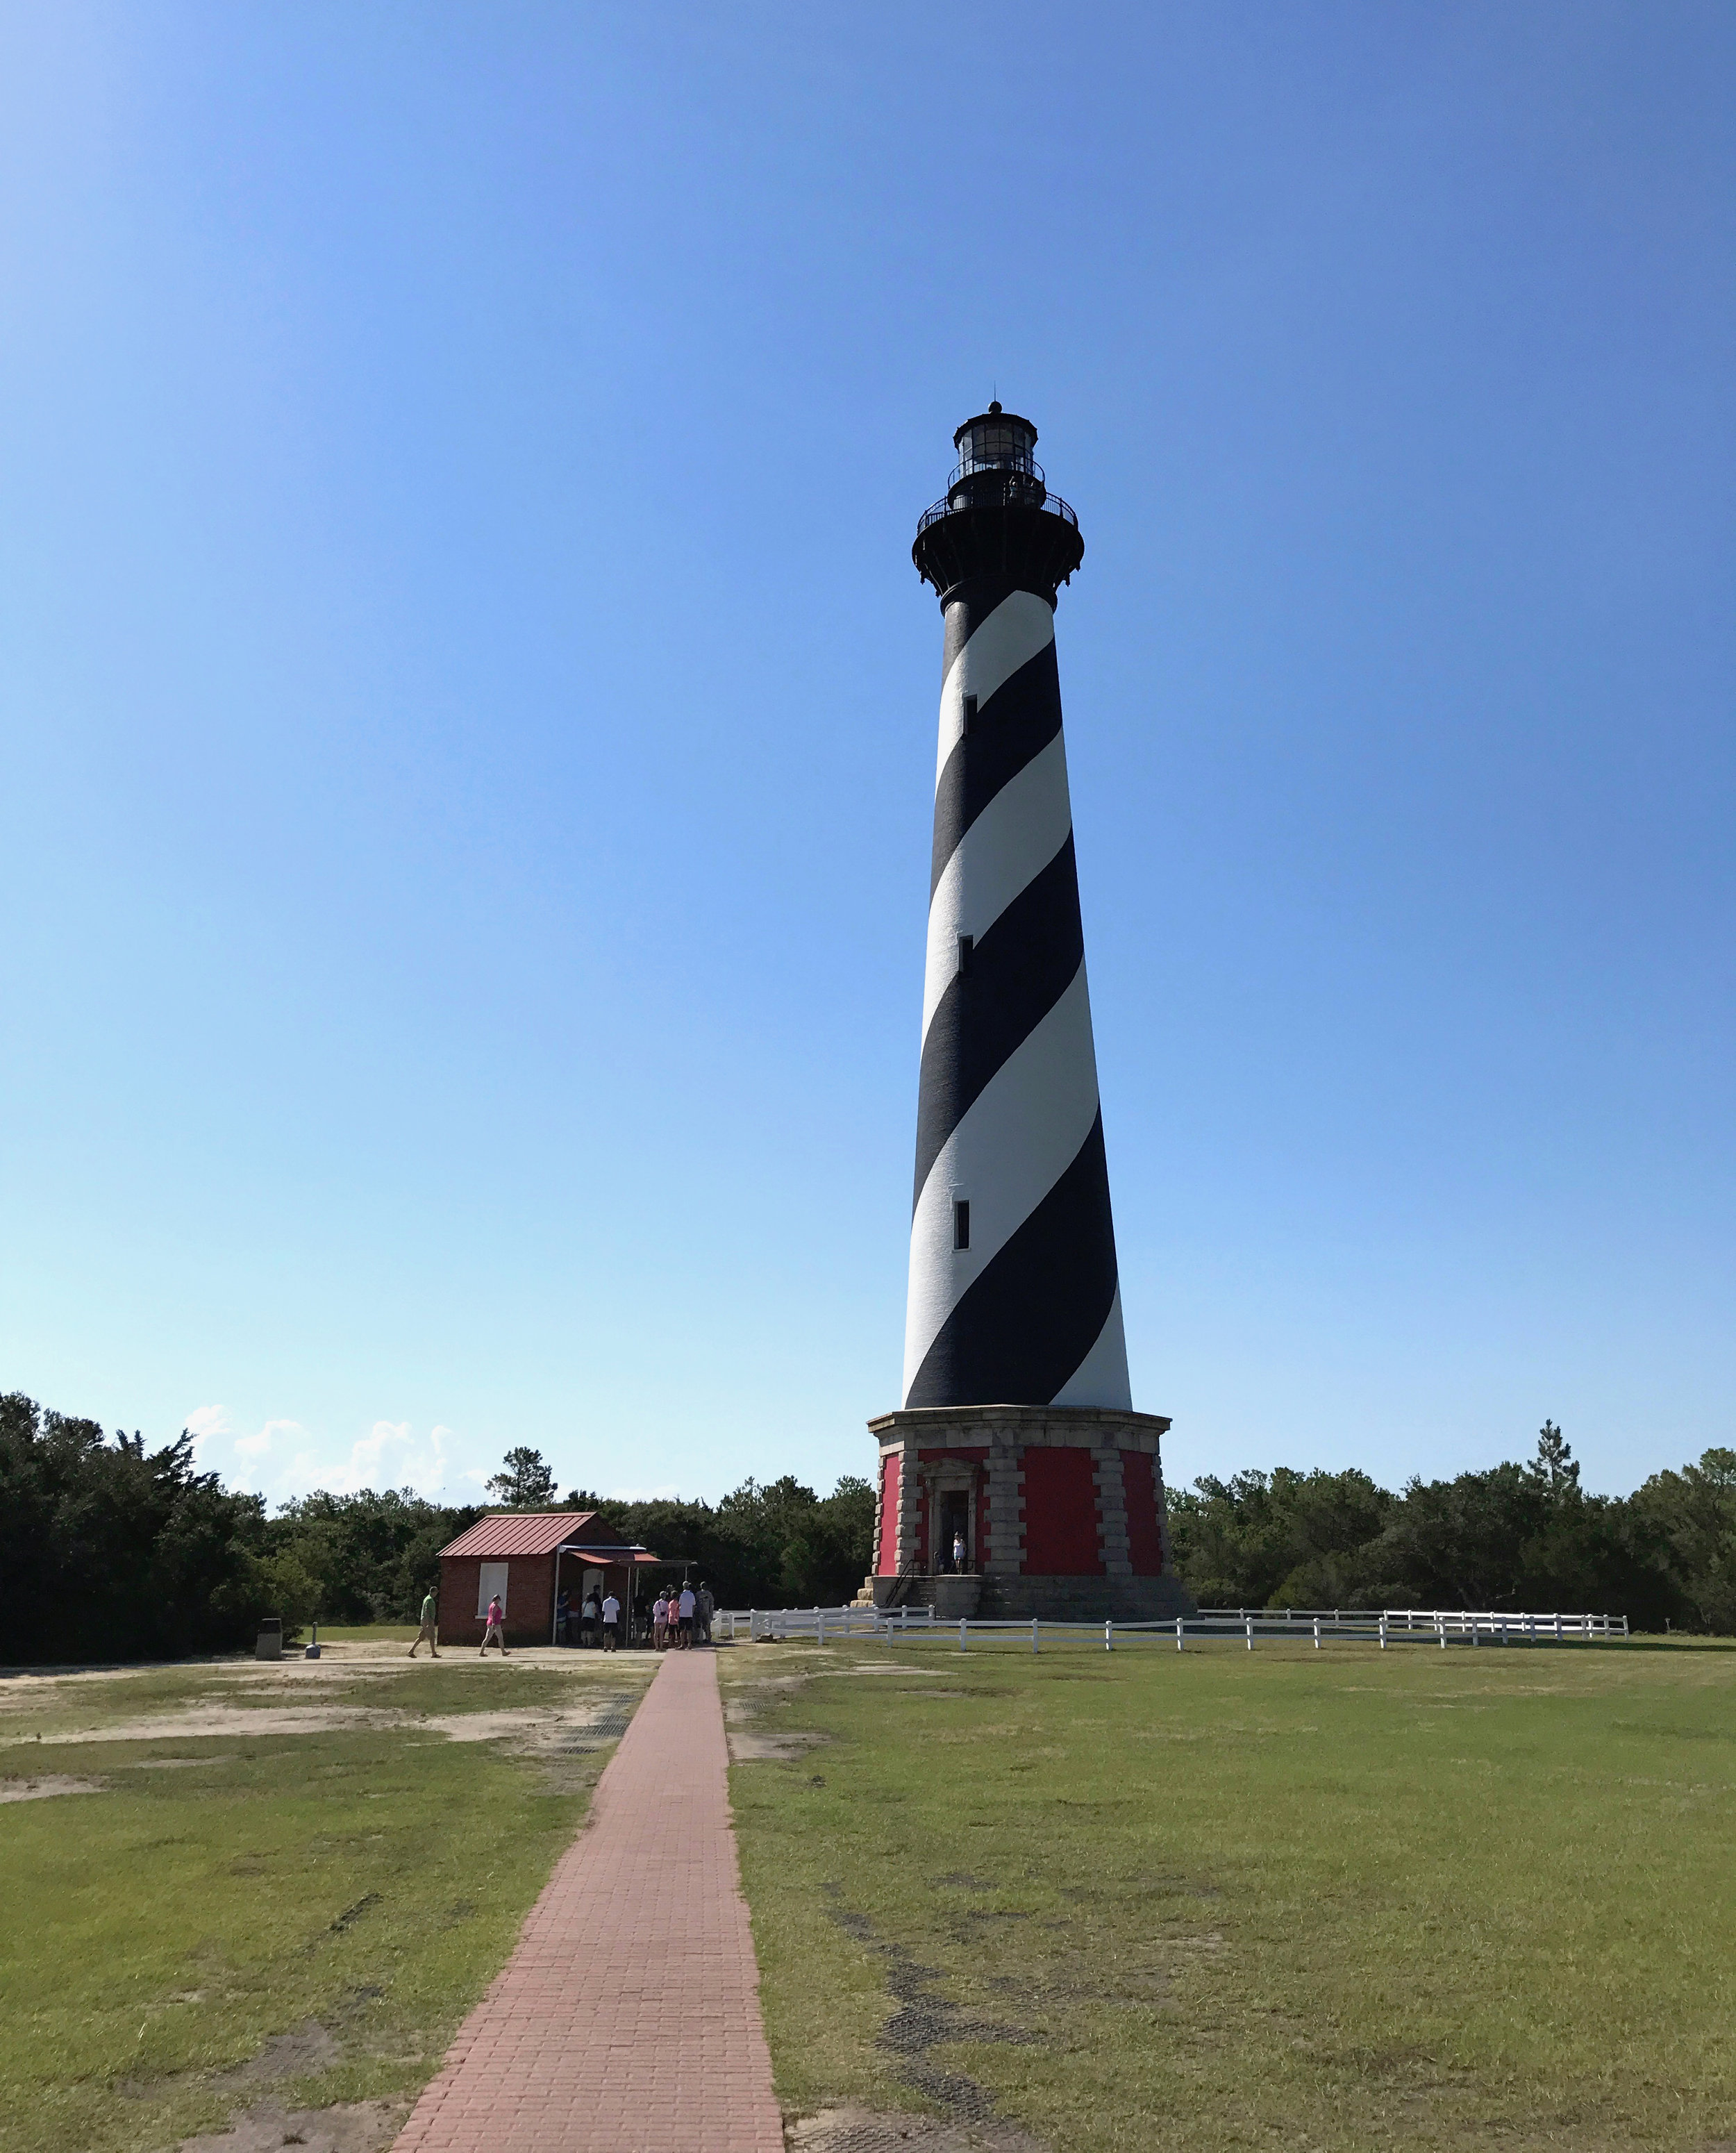 The Cape Hatteras Lighthouse – the tallest brick lighthouse in the U.S.